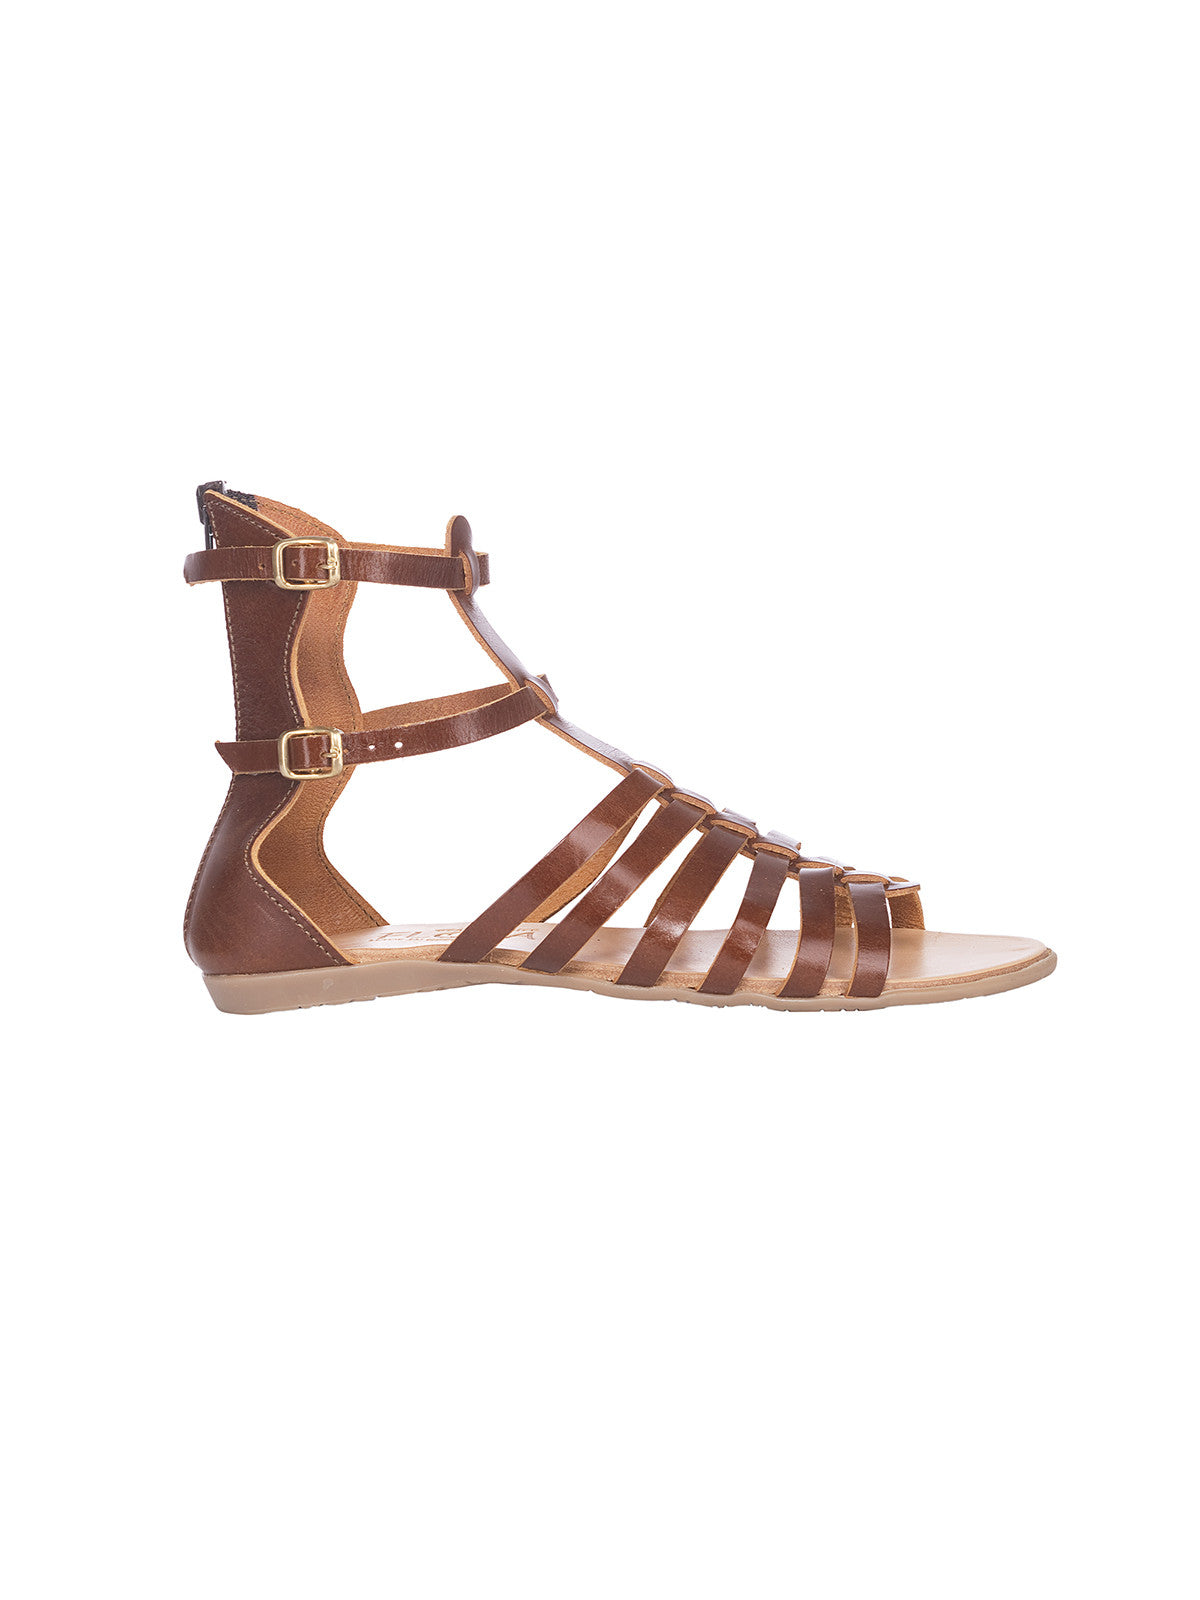 Florentia Greek Sandals